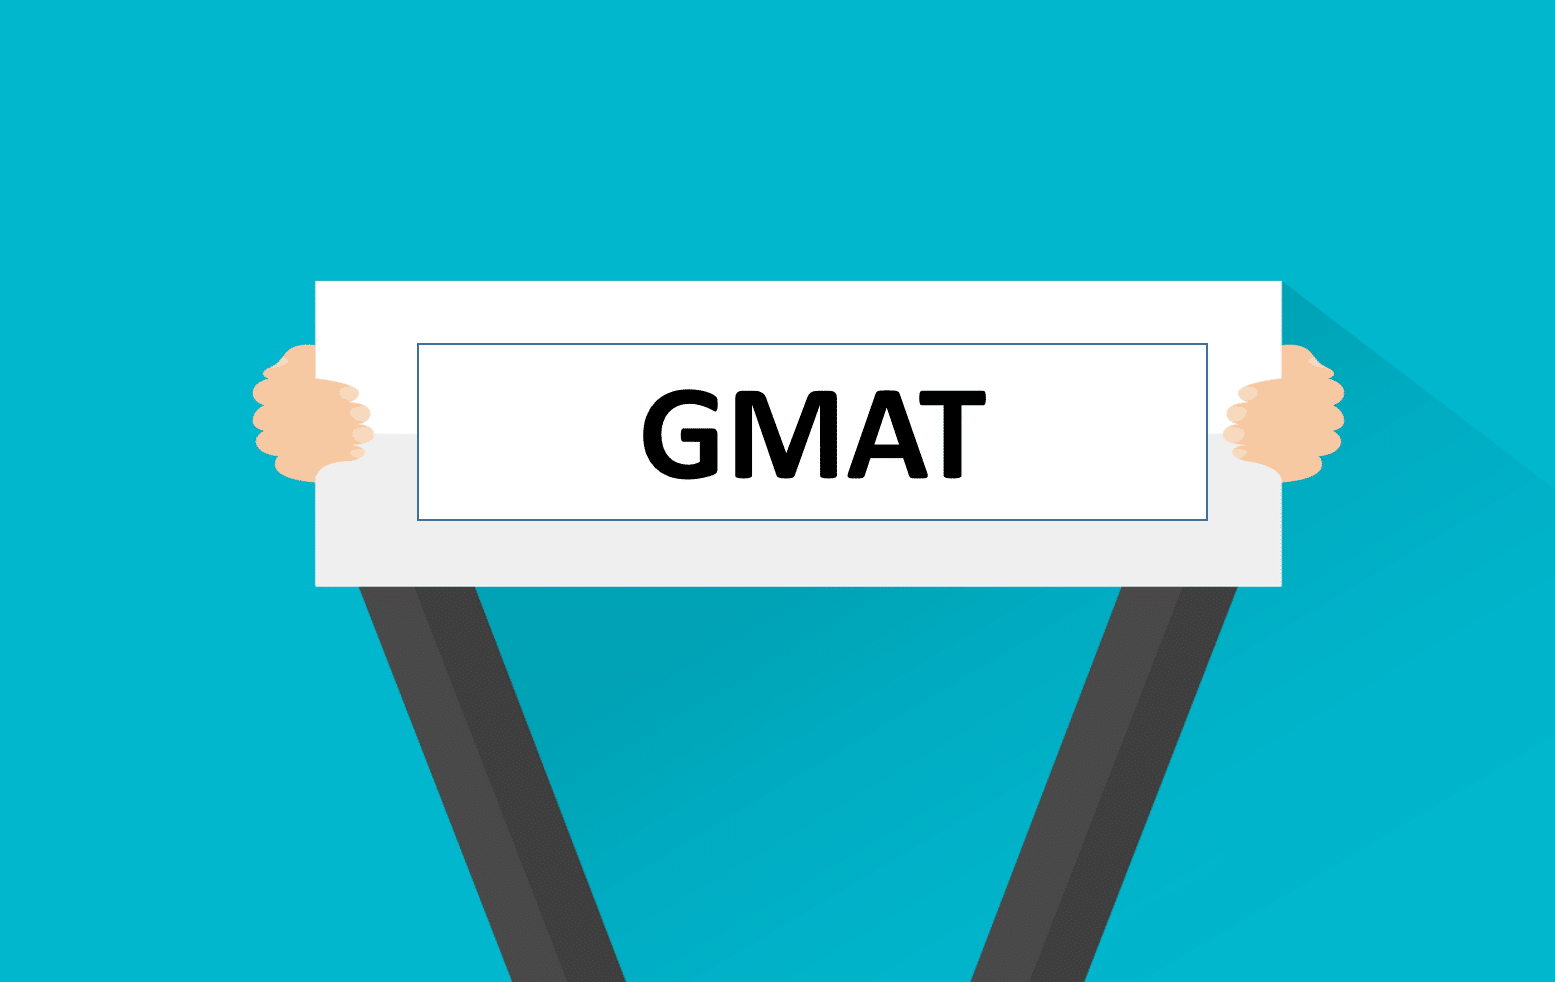 GMAT overview